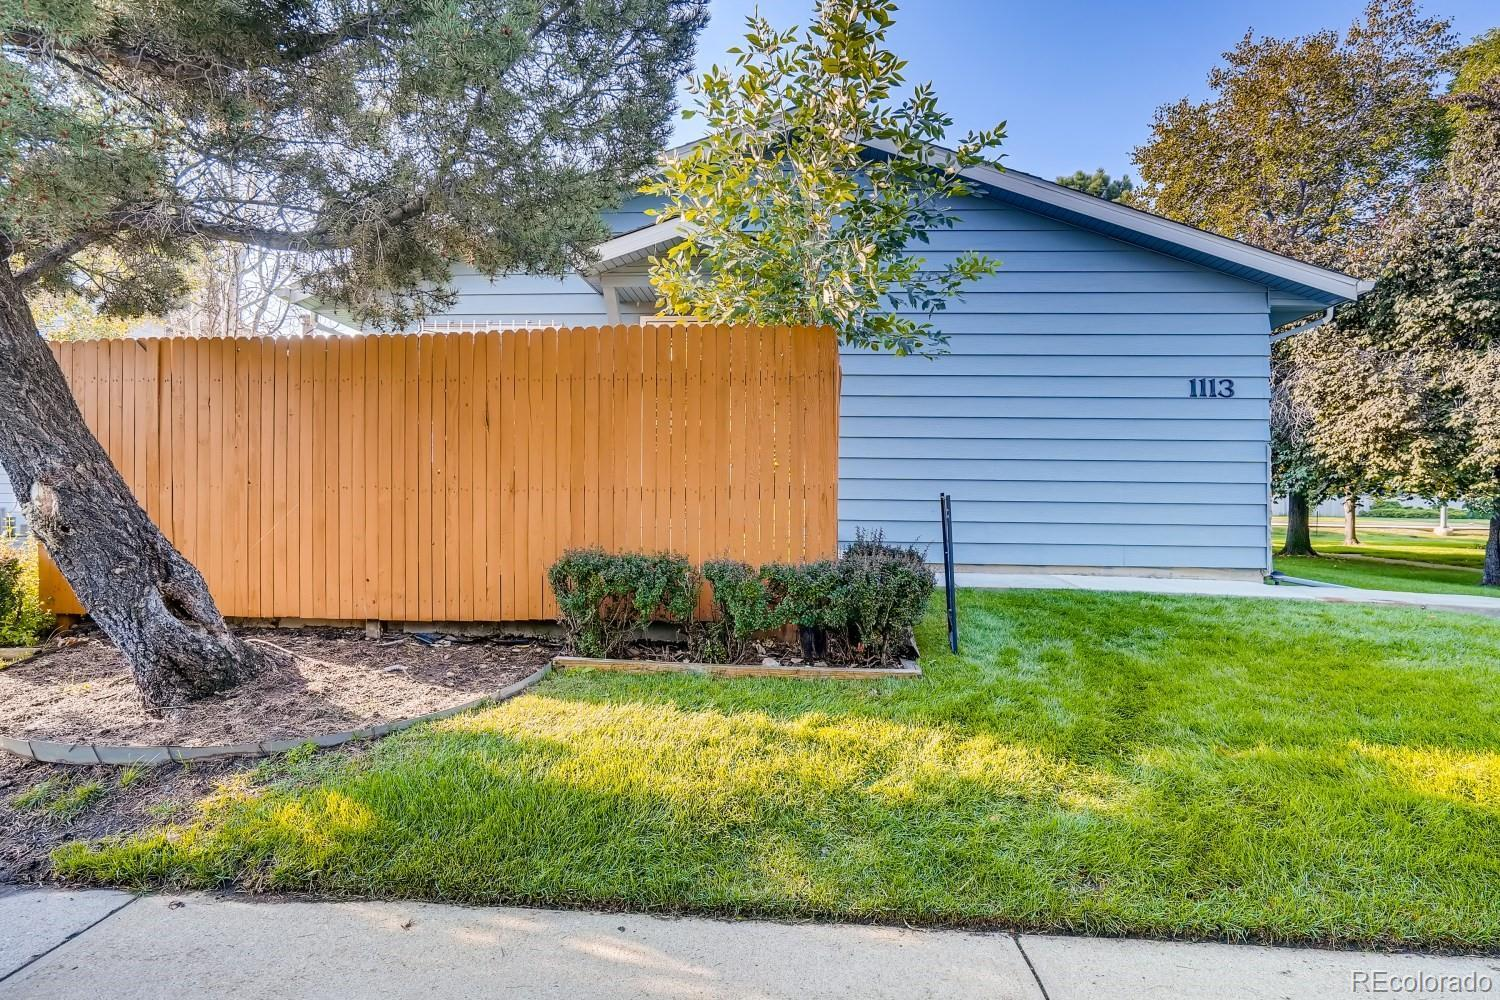 1113 W 112th Avenue #A, Westminster, CO 80234 - #: 4782748